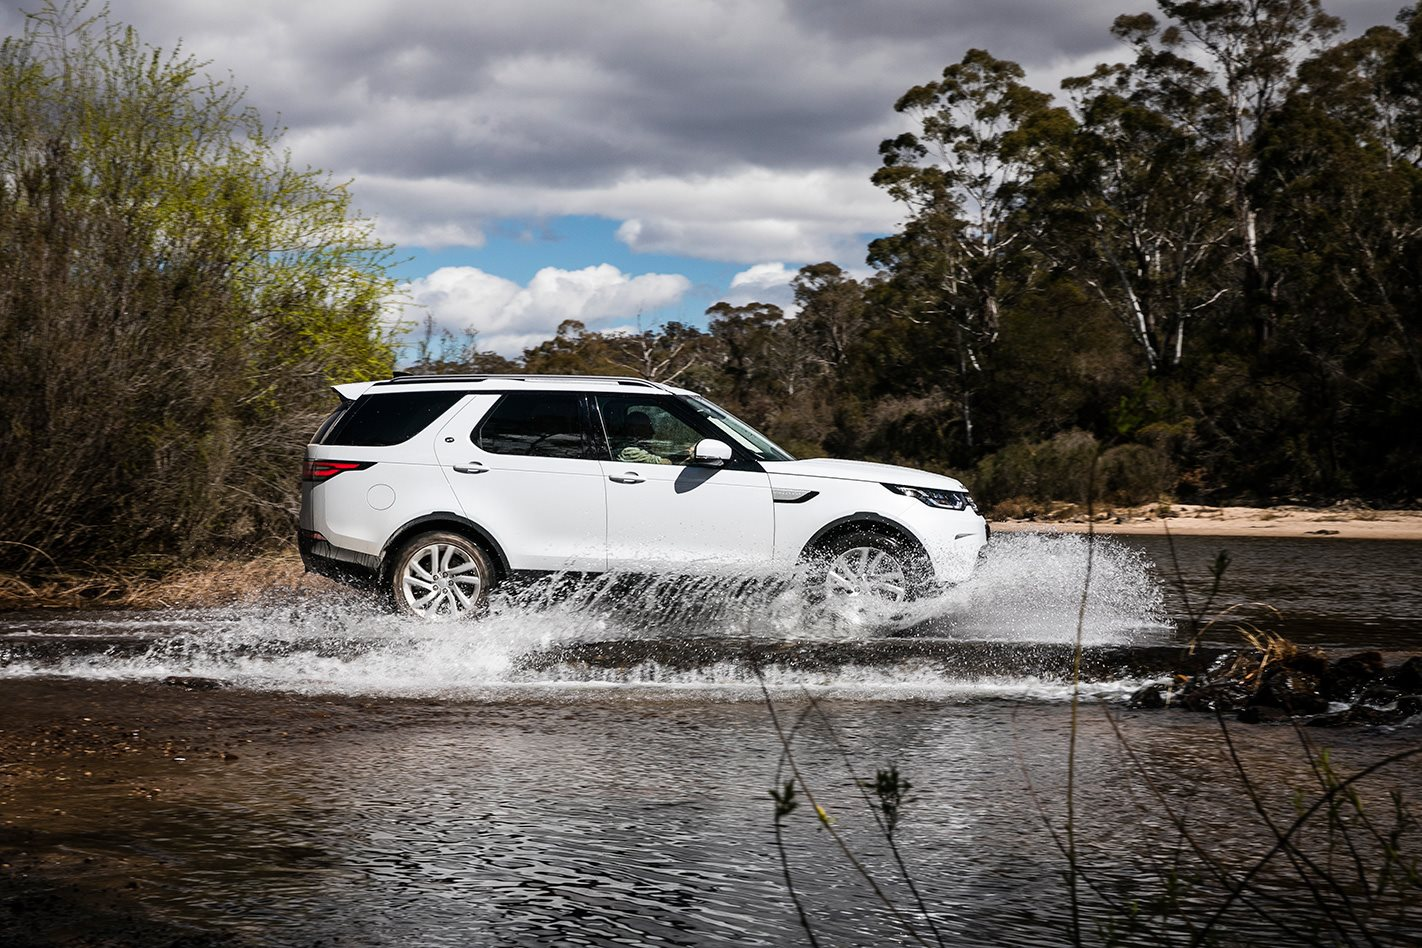 2017 Land Rover Discovery water.jpg